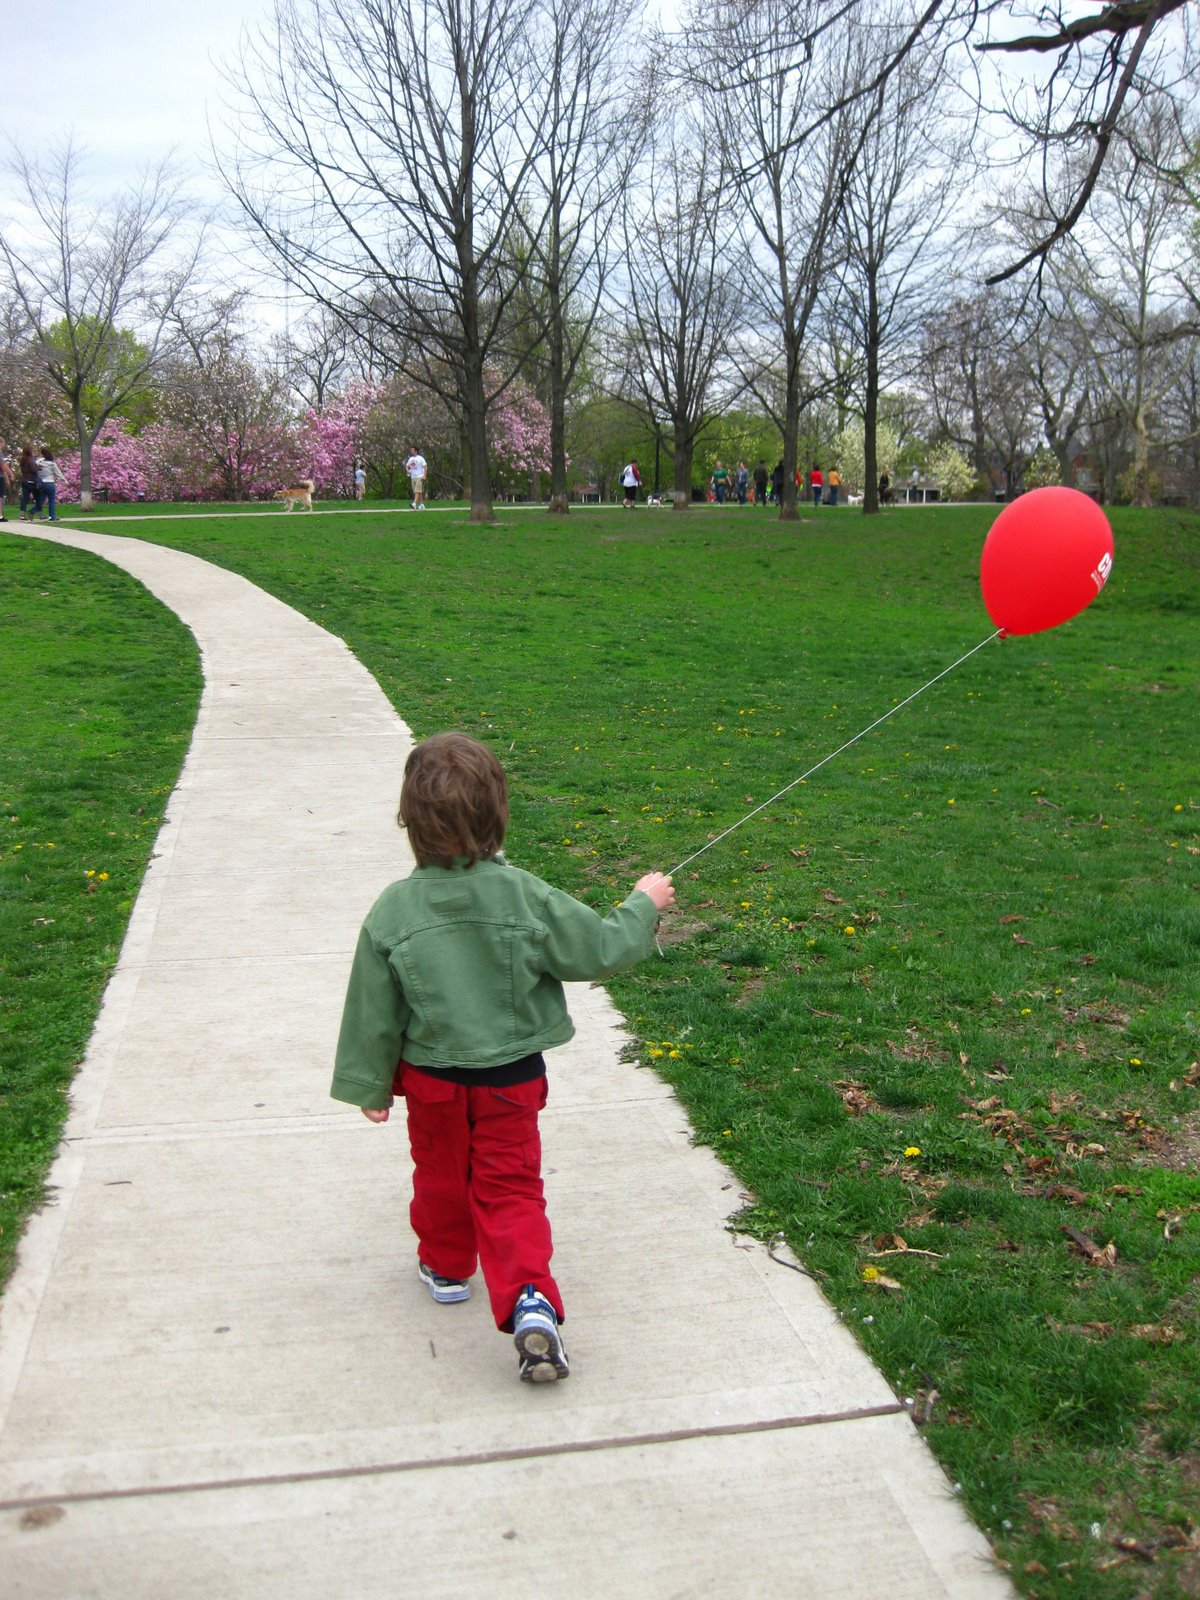 Walking with a balloon